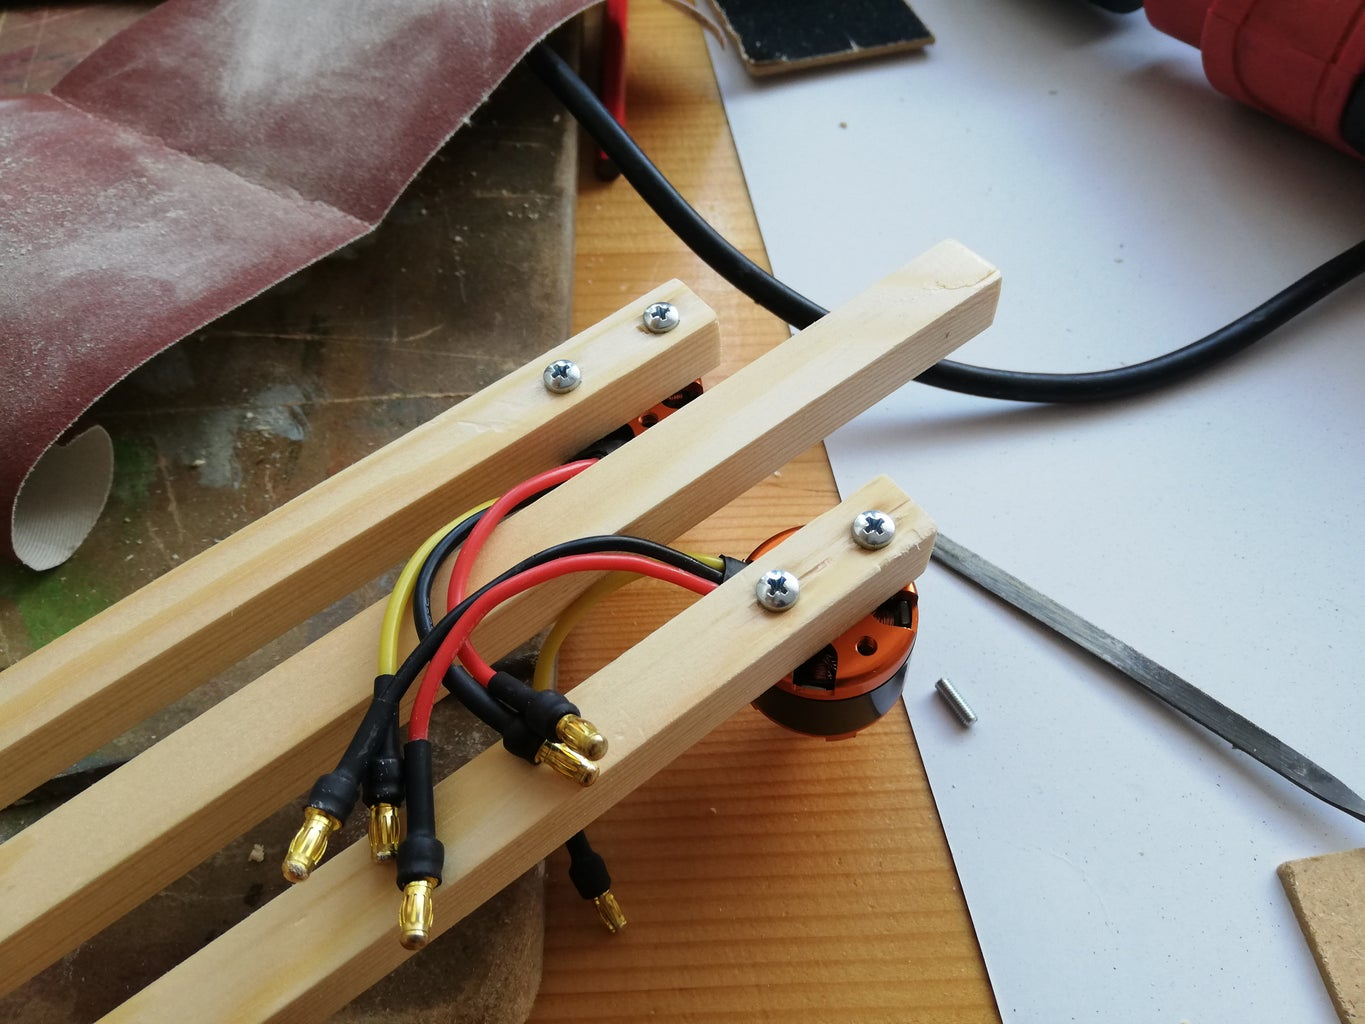 Drilling Holes for the Motors